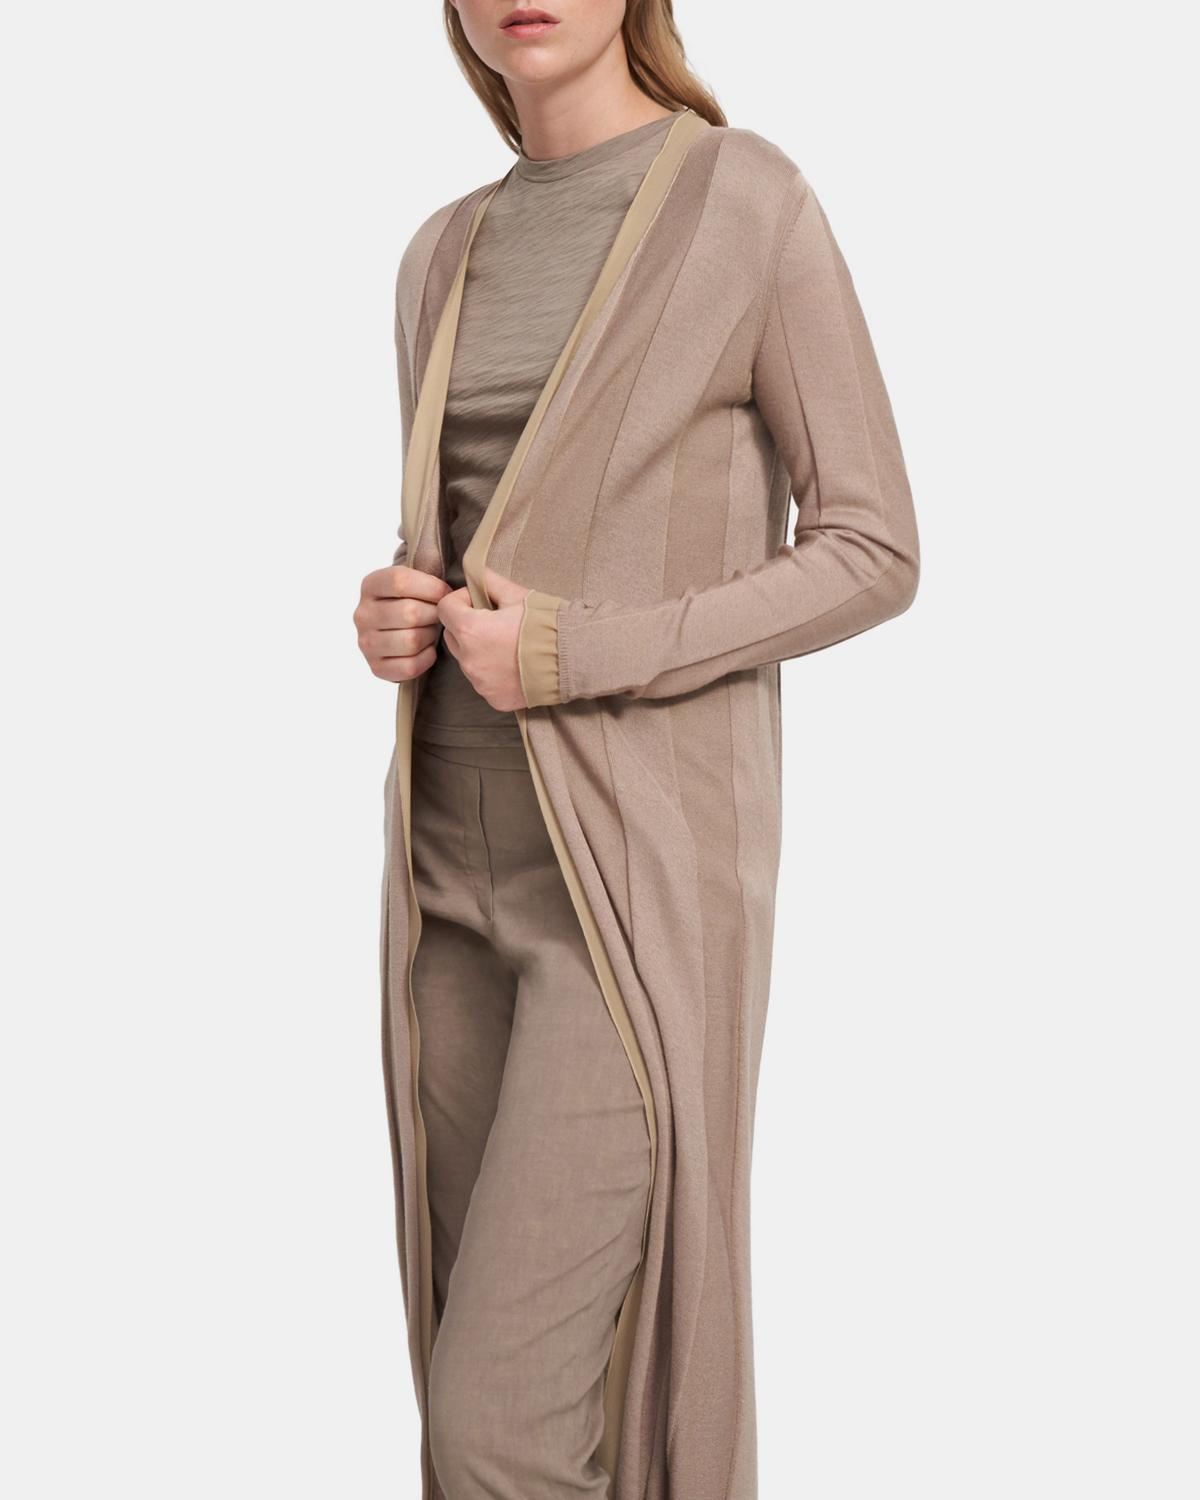 Long Cardigan in Viscose-Wool 0 - click to view larger image